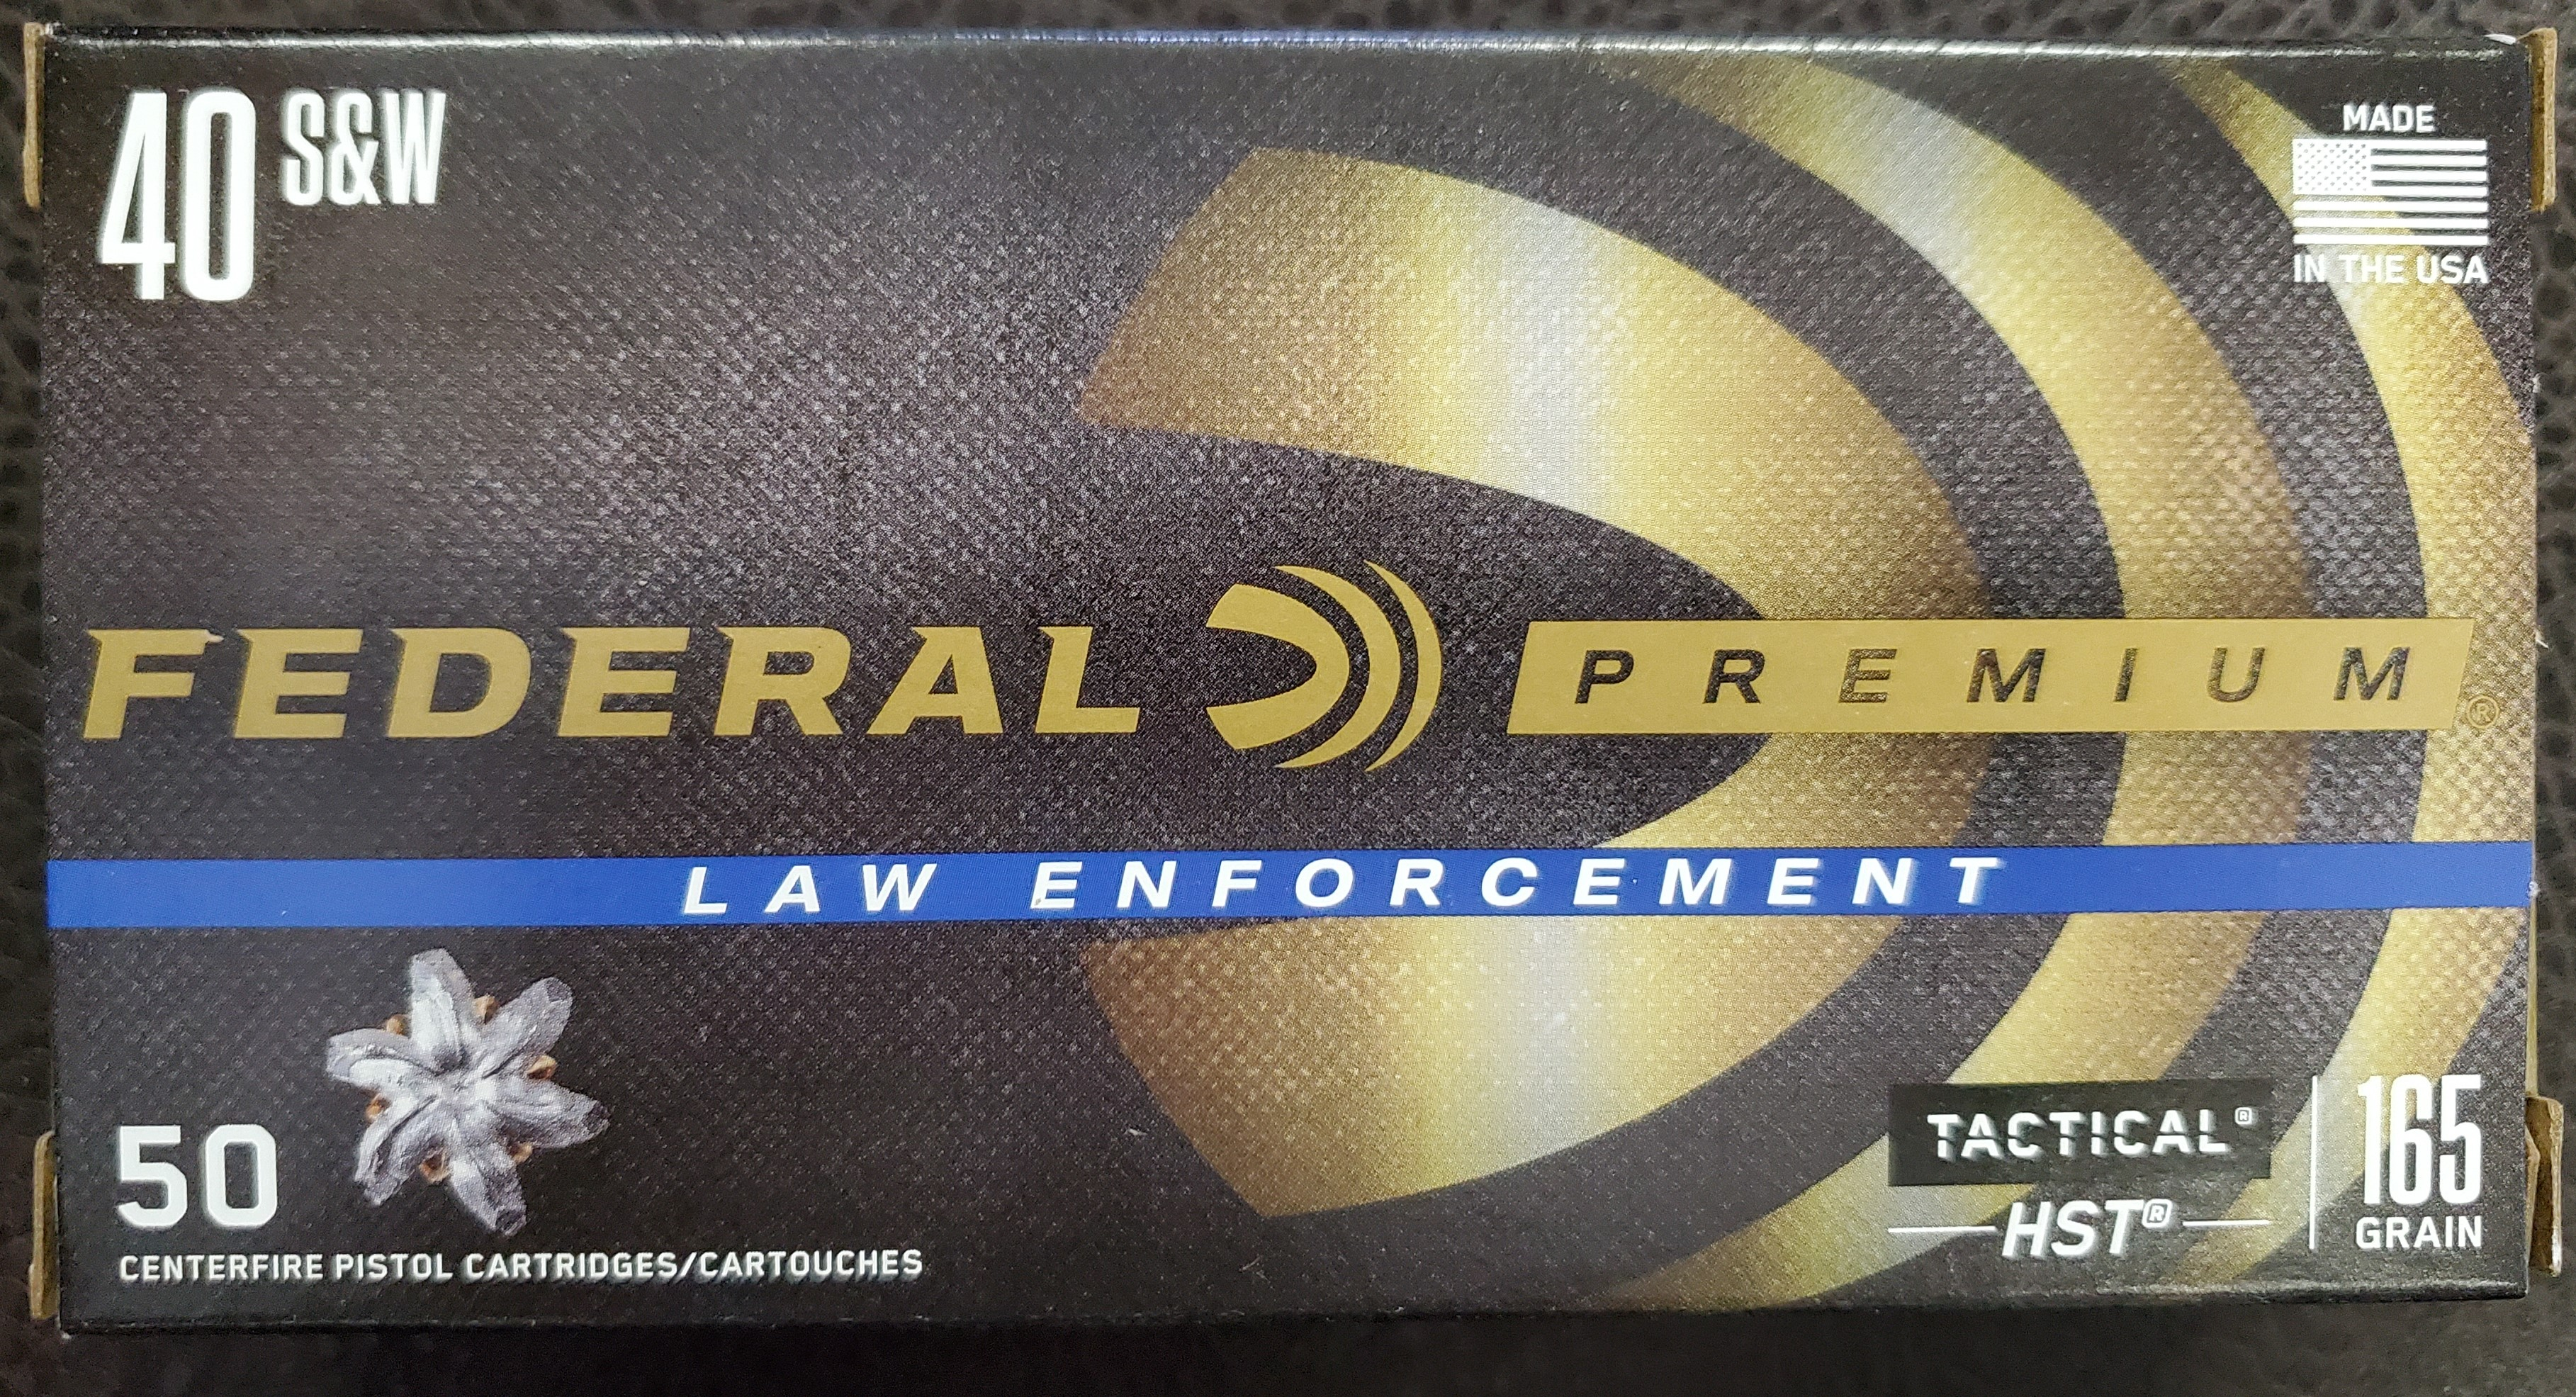 Federal Premium Law Enforcement Tactical HST 40 S&W